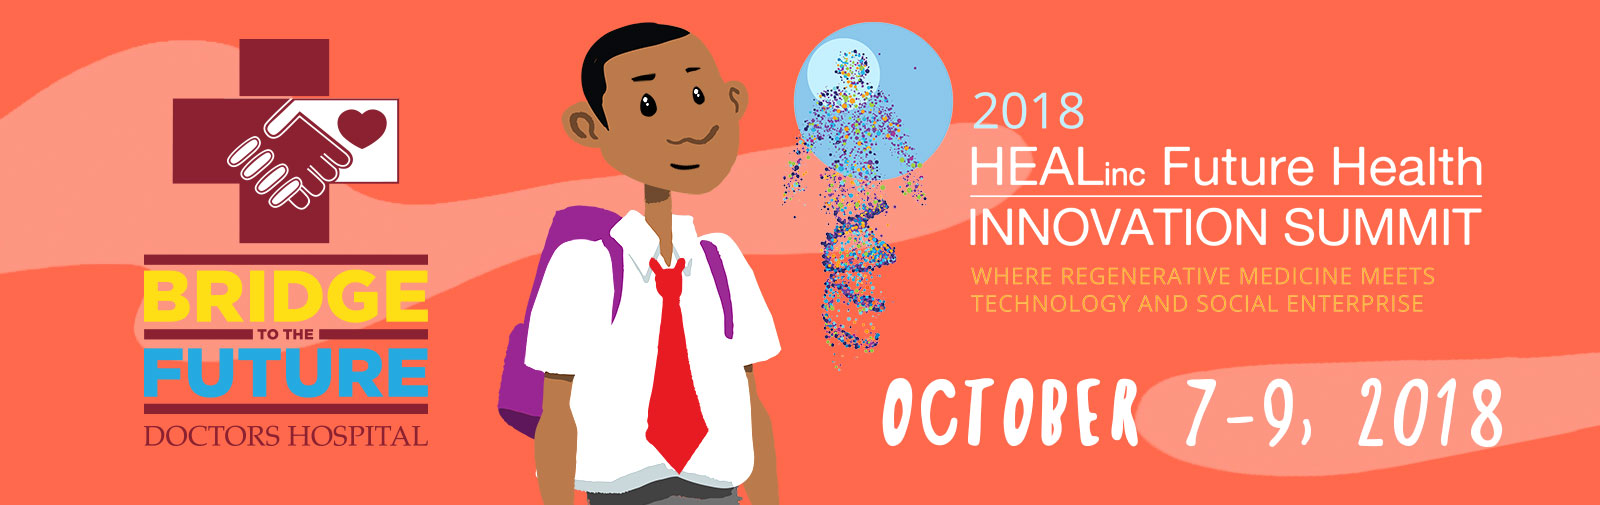 2018 Inaugural Healinc Future Health Innovation Summit